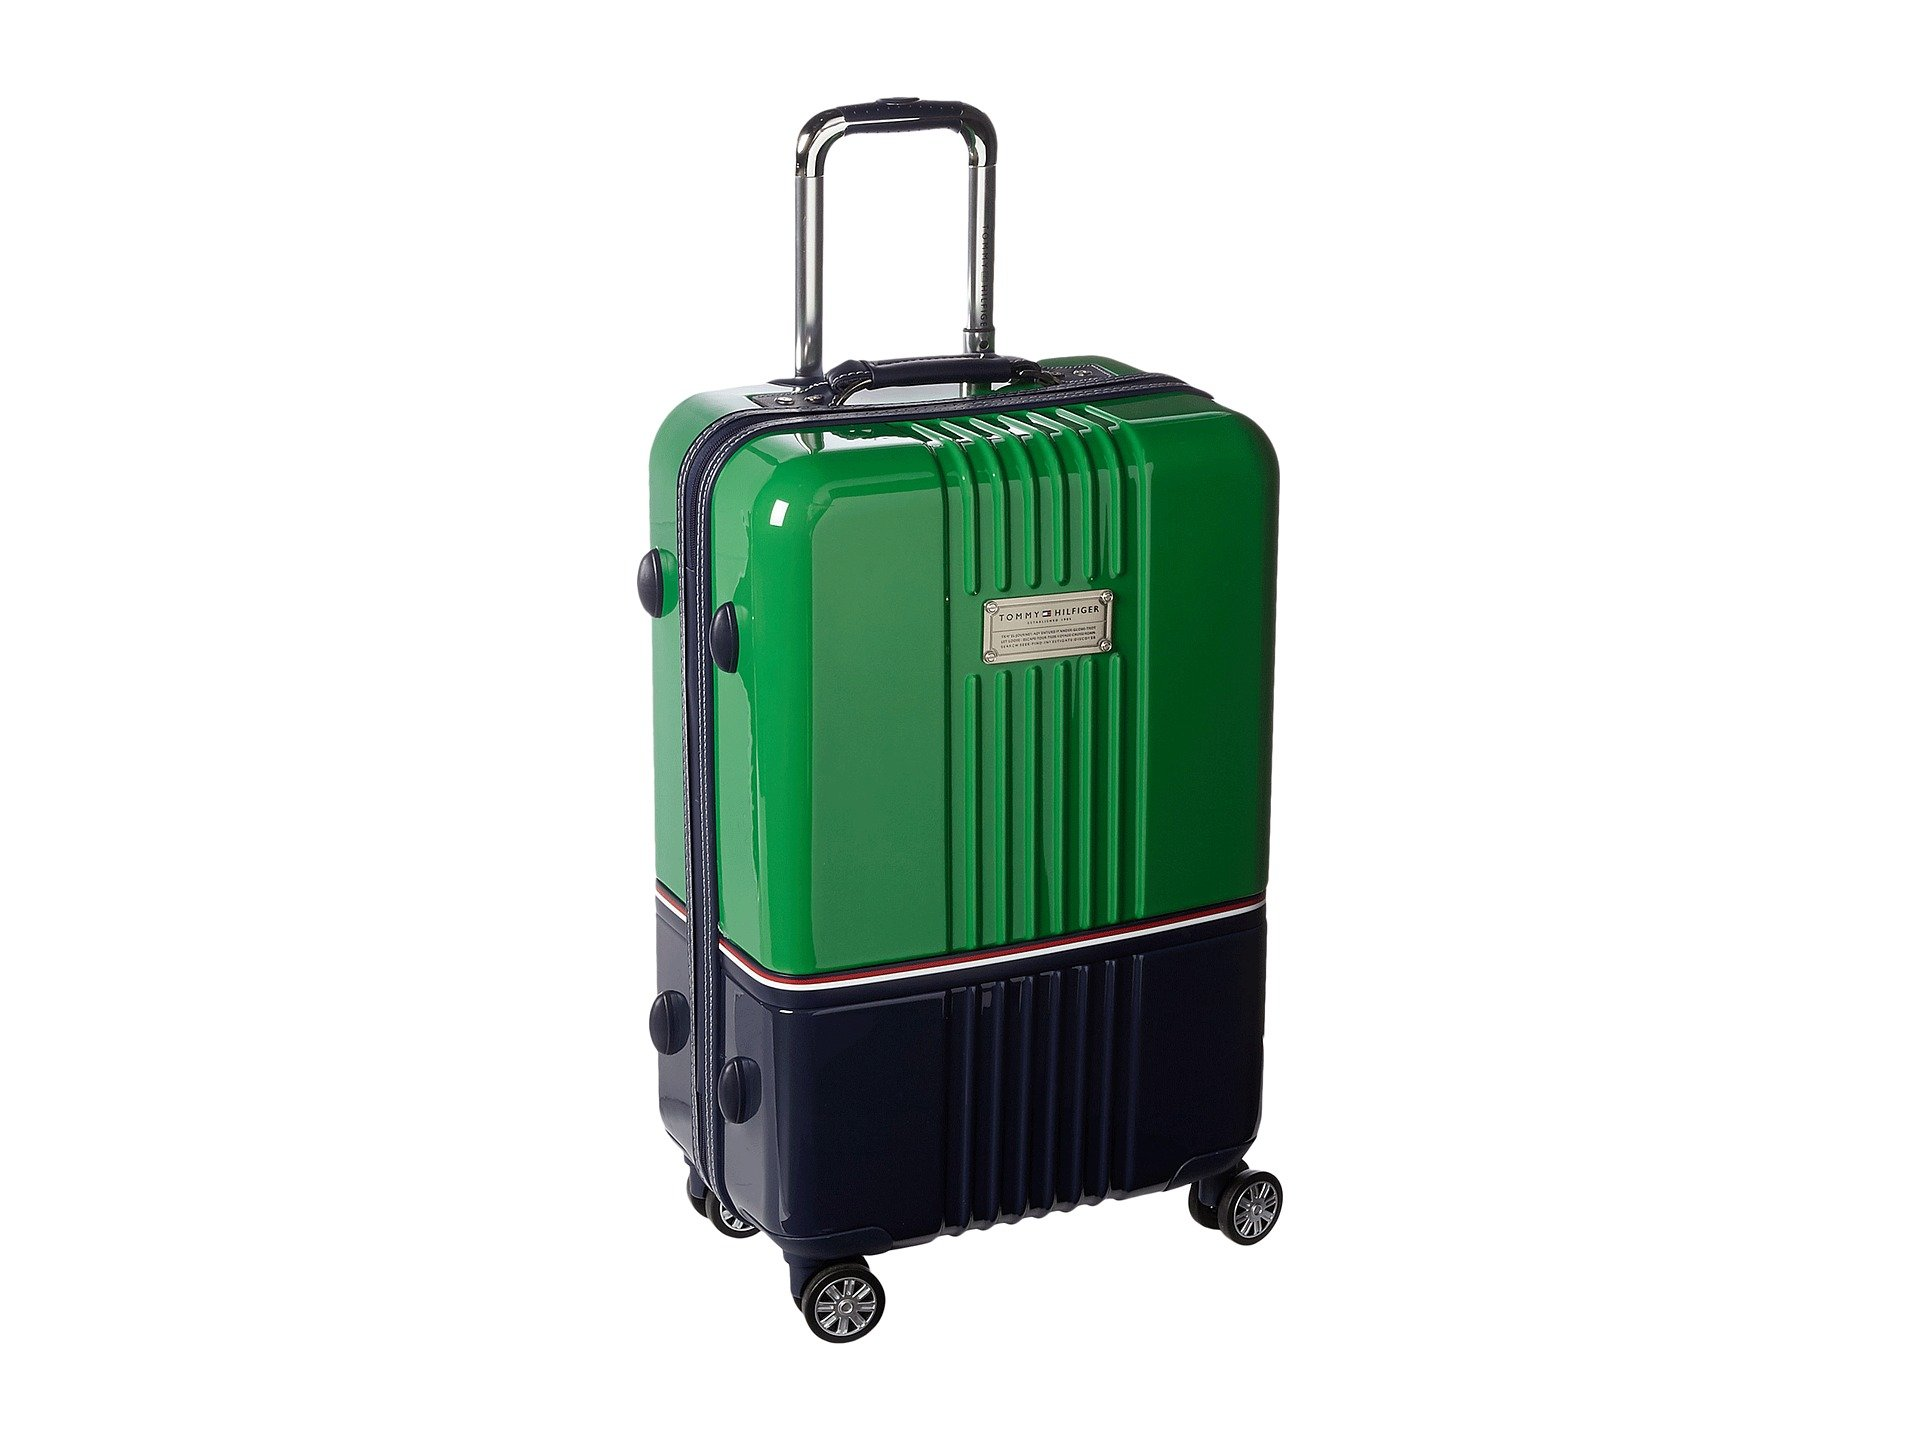 "Duo Chrome 24"" Upright Suitcase, GREEN/NAVY"